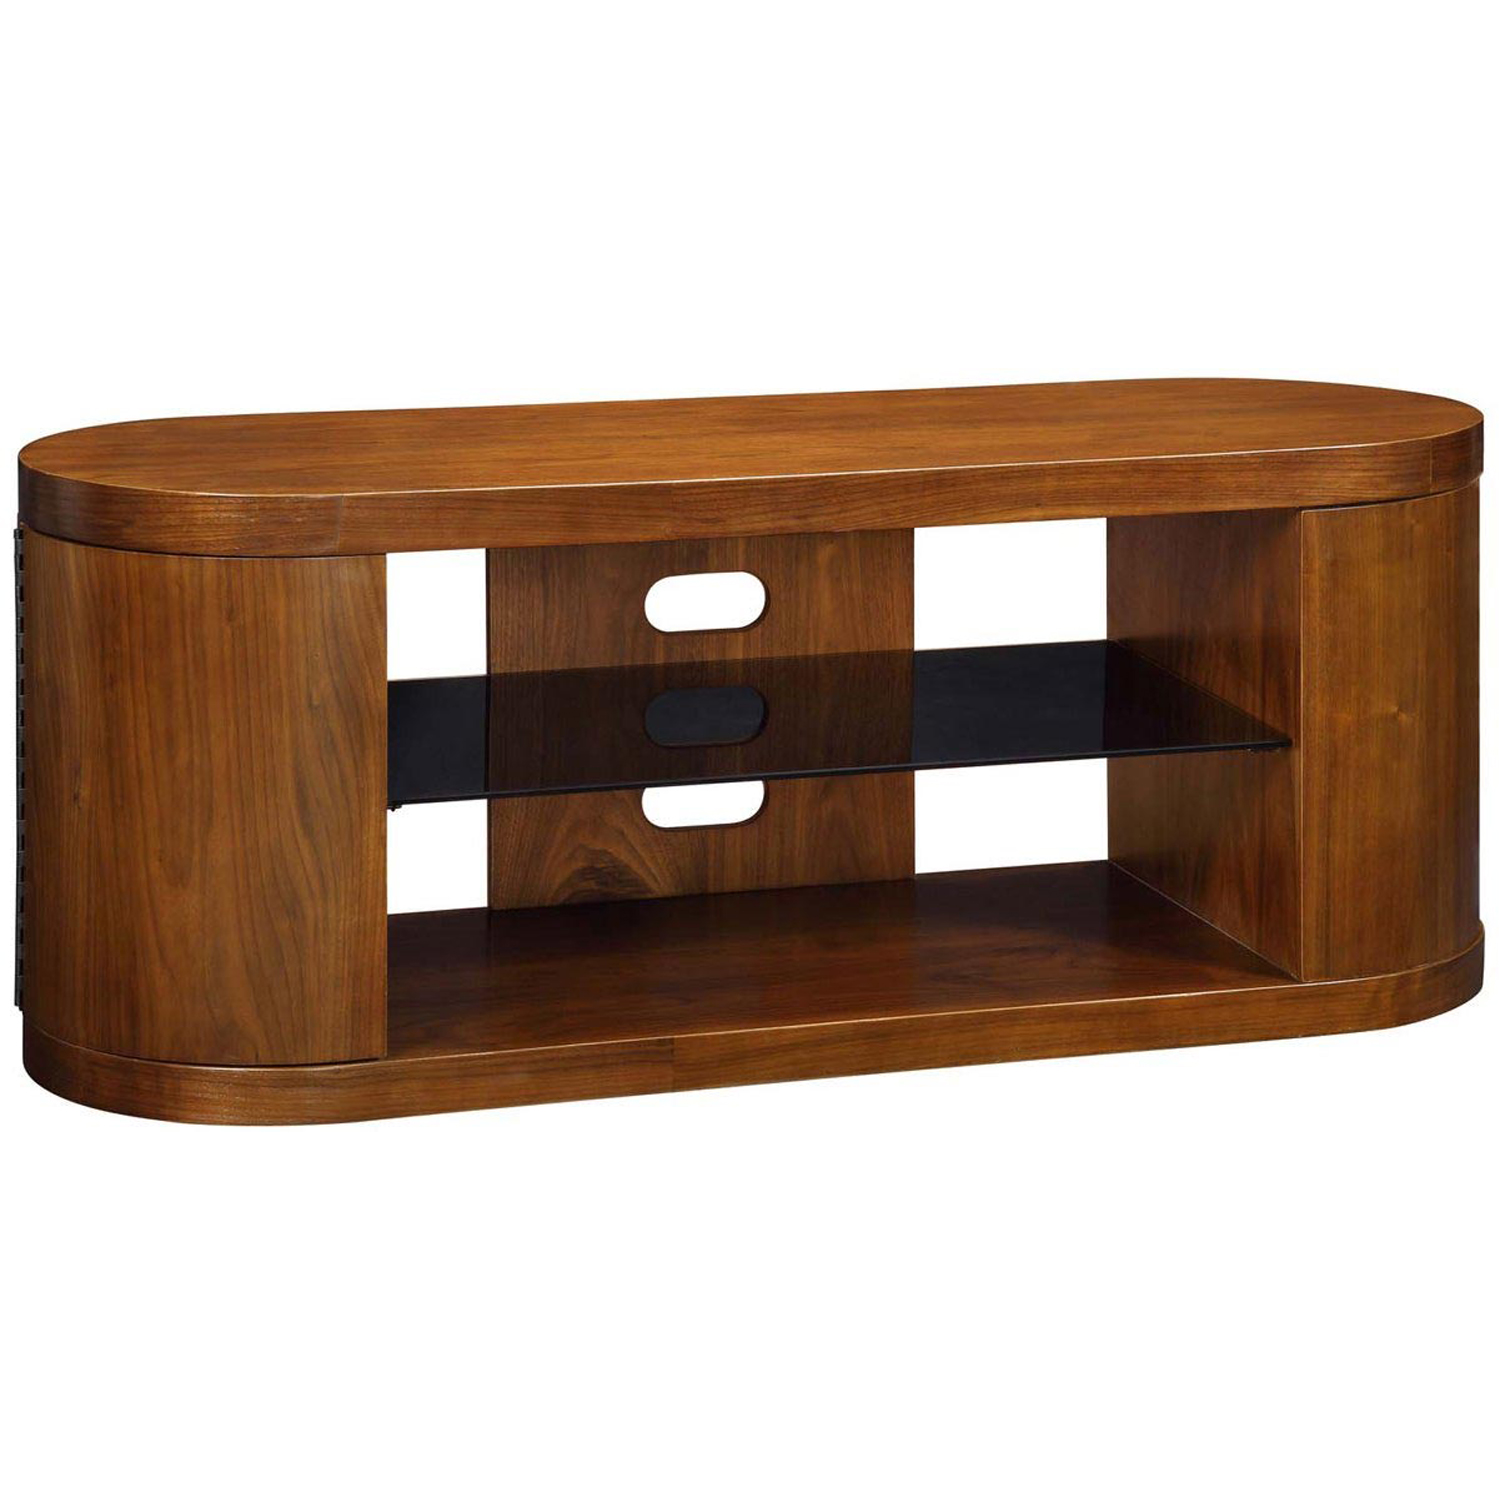 Image of Jual Florence TV Stand